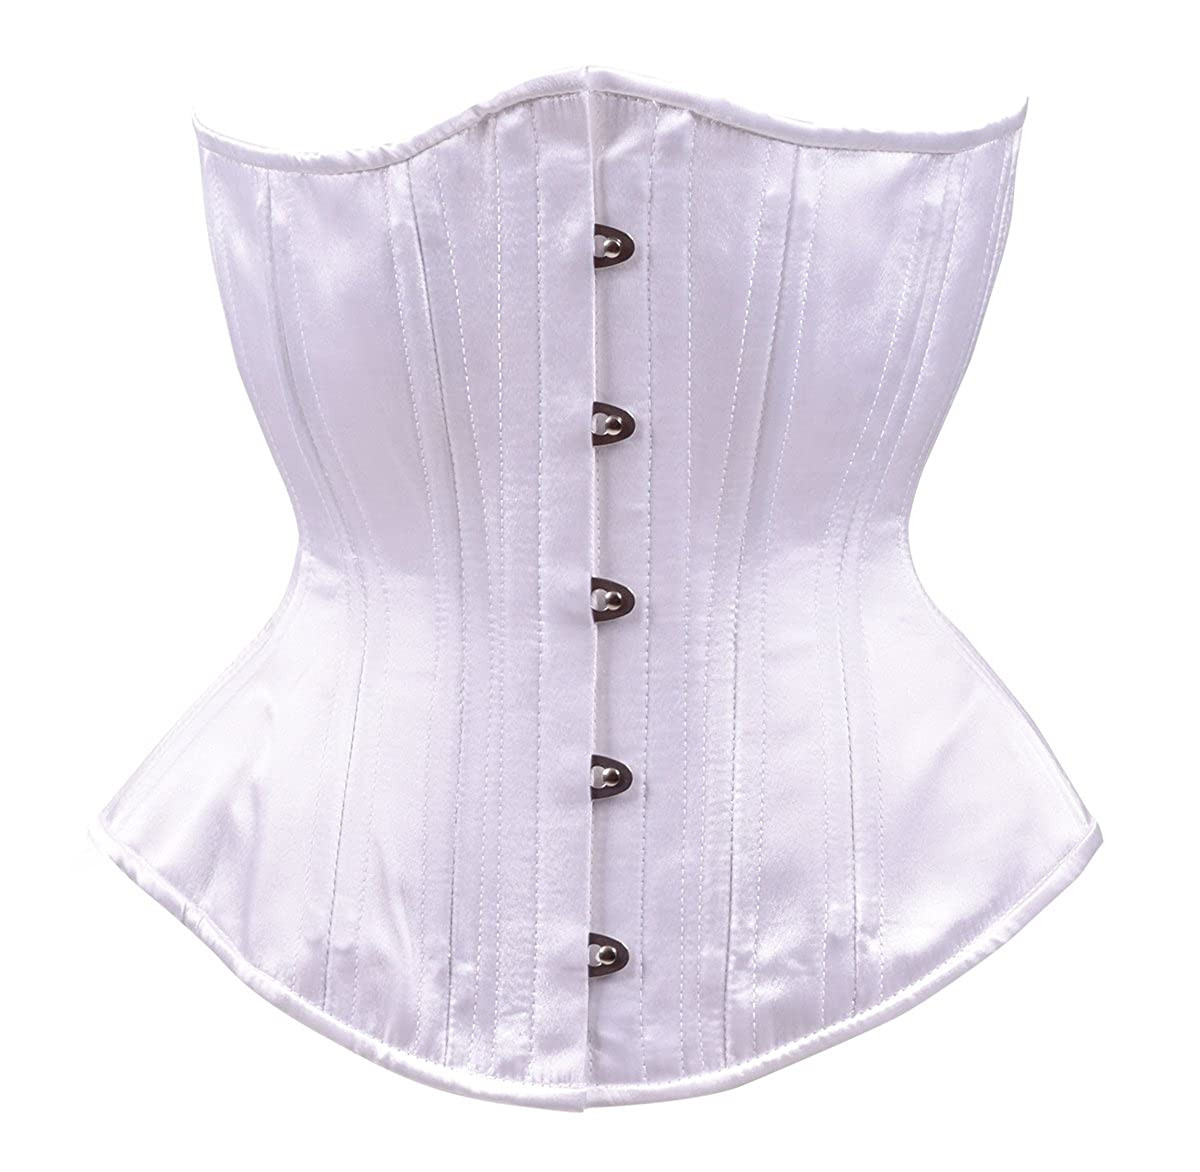 a2d8e26b74e Timeless Trends Womens Steel Boned Waist Training Hourglass Corset at  Amazon Women s Clothing store